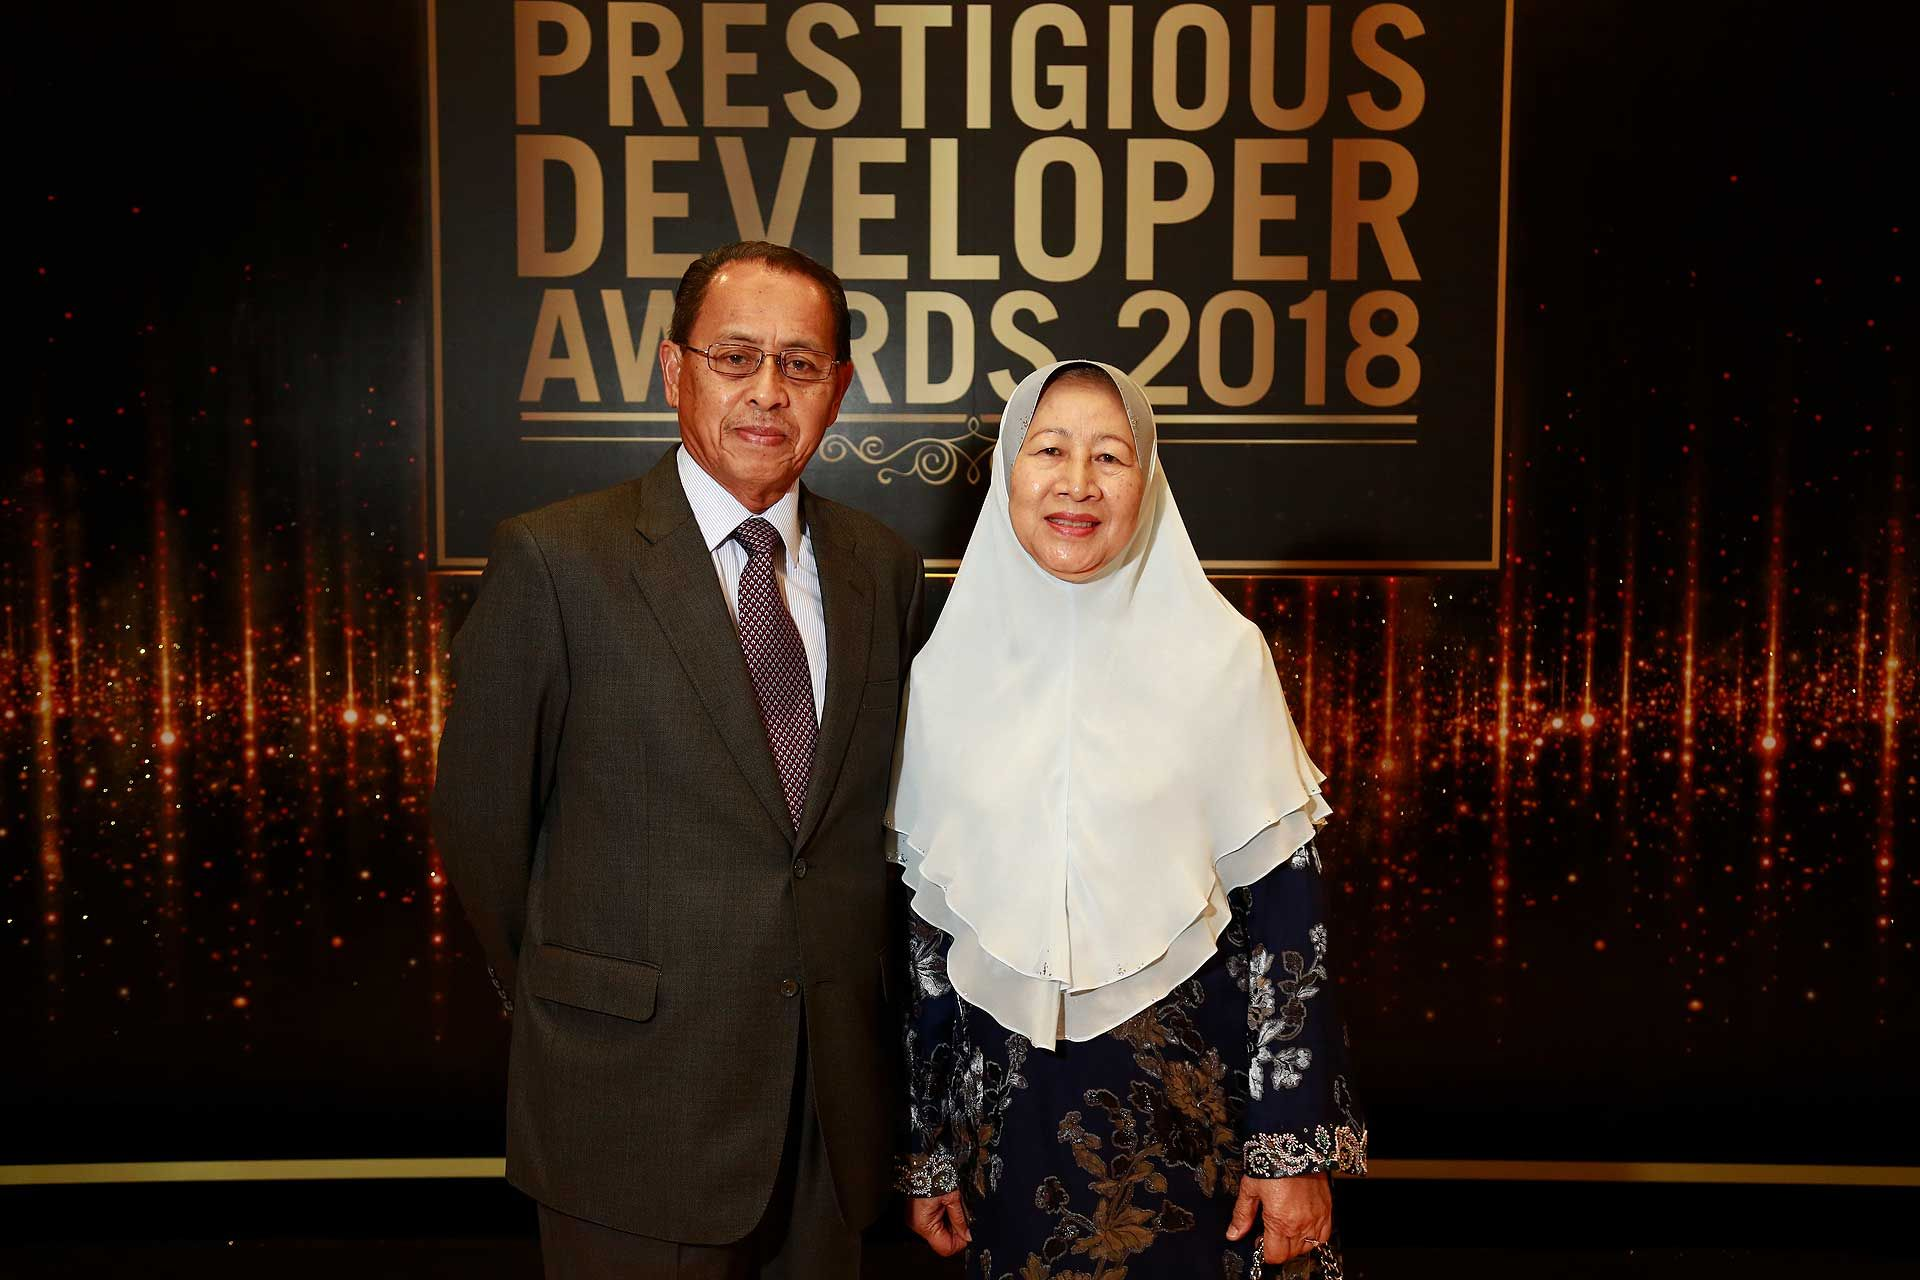 Dato' Mohd Tajri and Datin Sumaiah